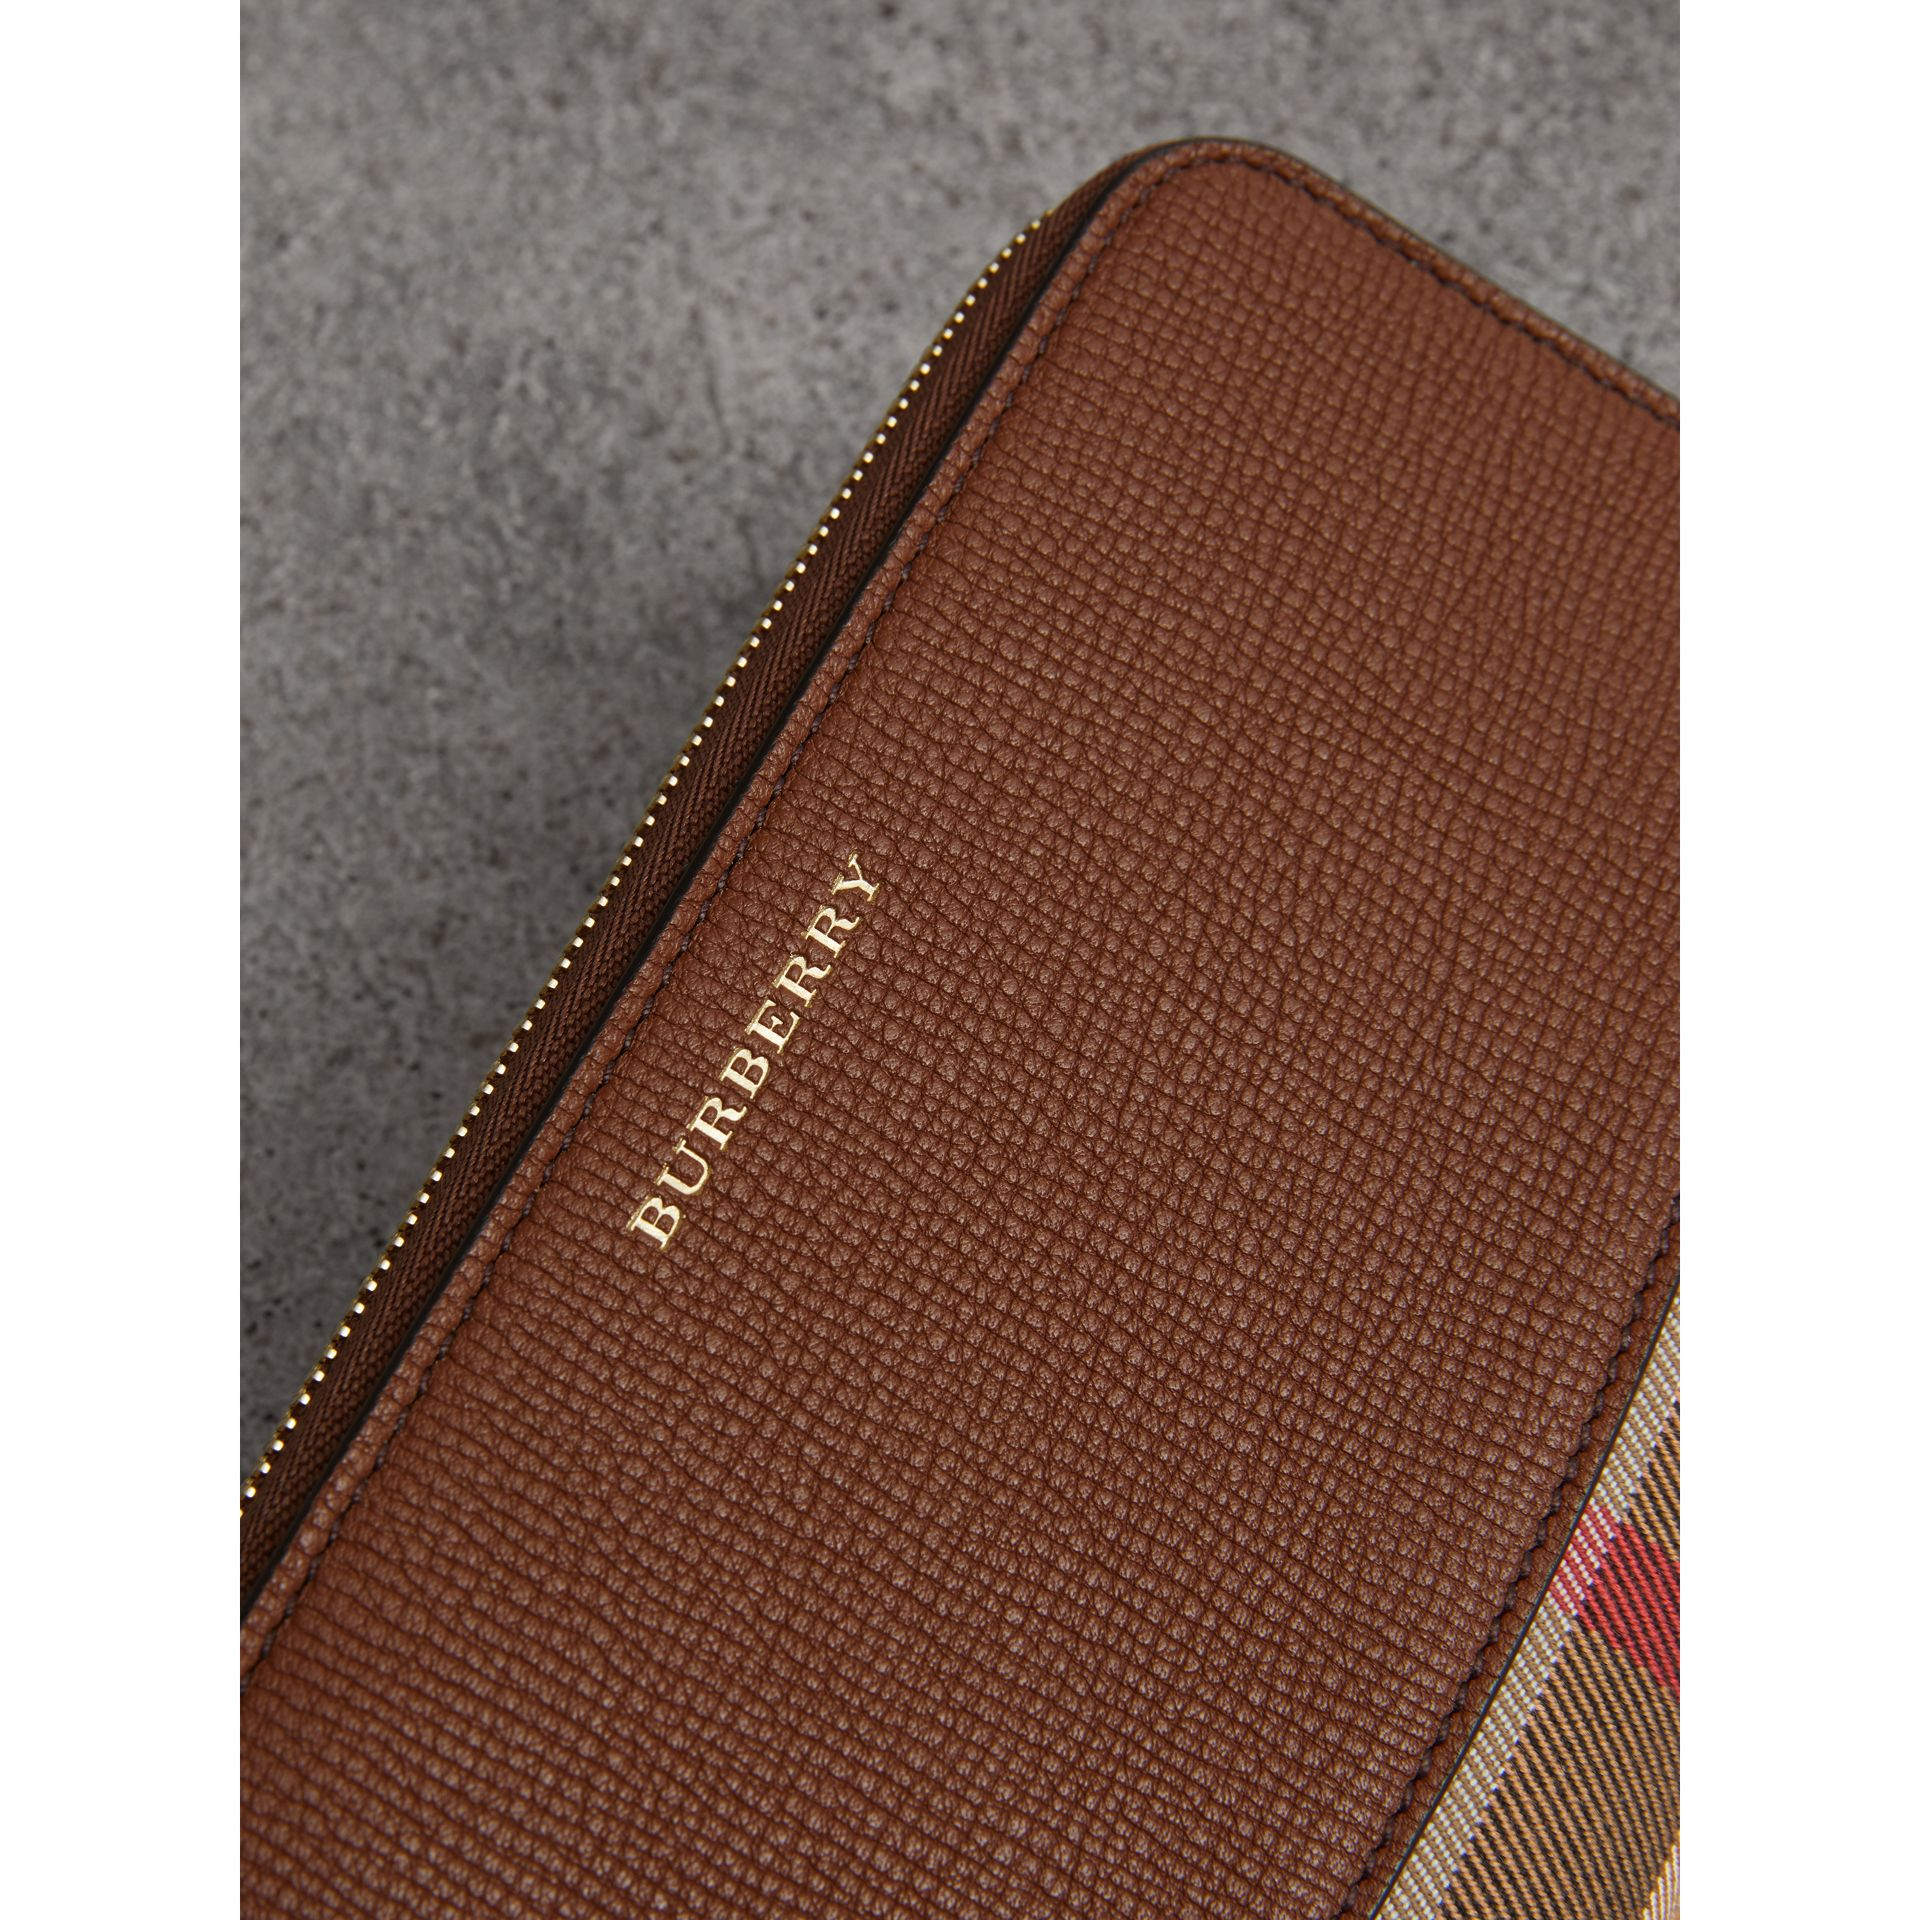 House Check and Leather Ziparound Wallet in Brown Ochre - Women | Burberry Canada - gallery image 1